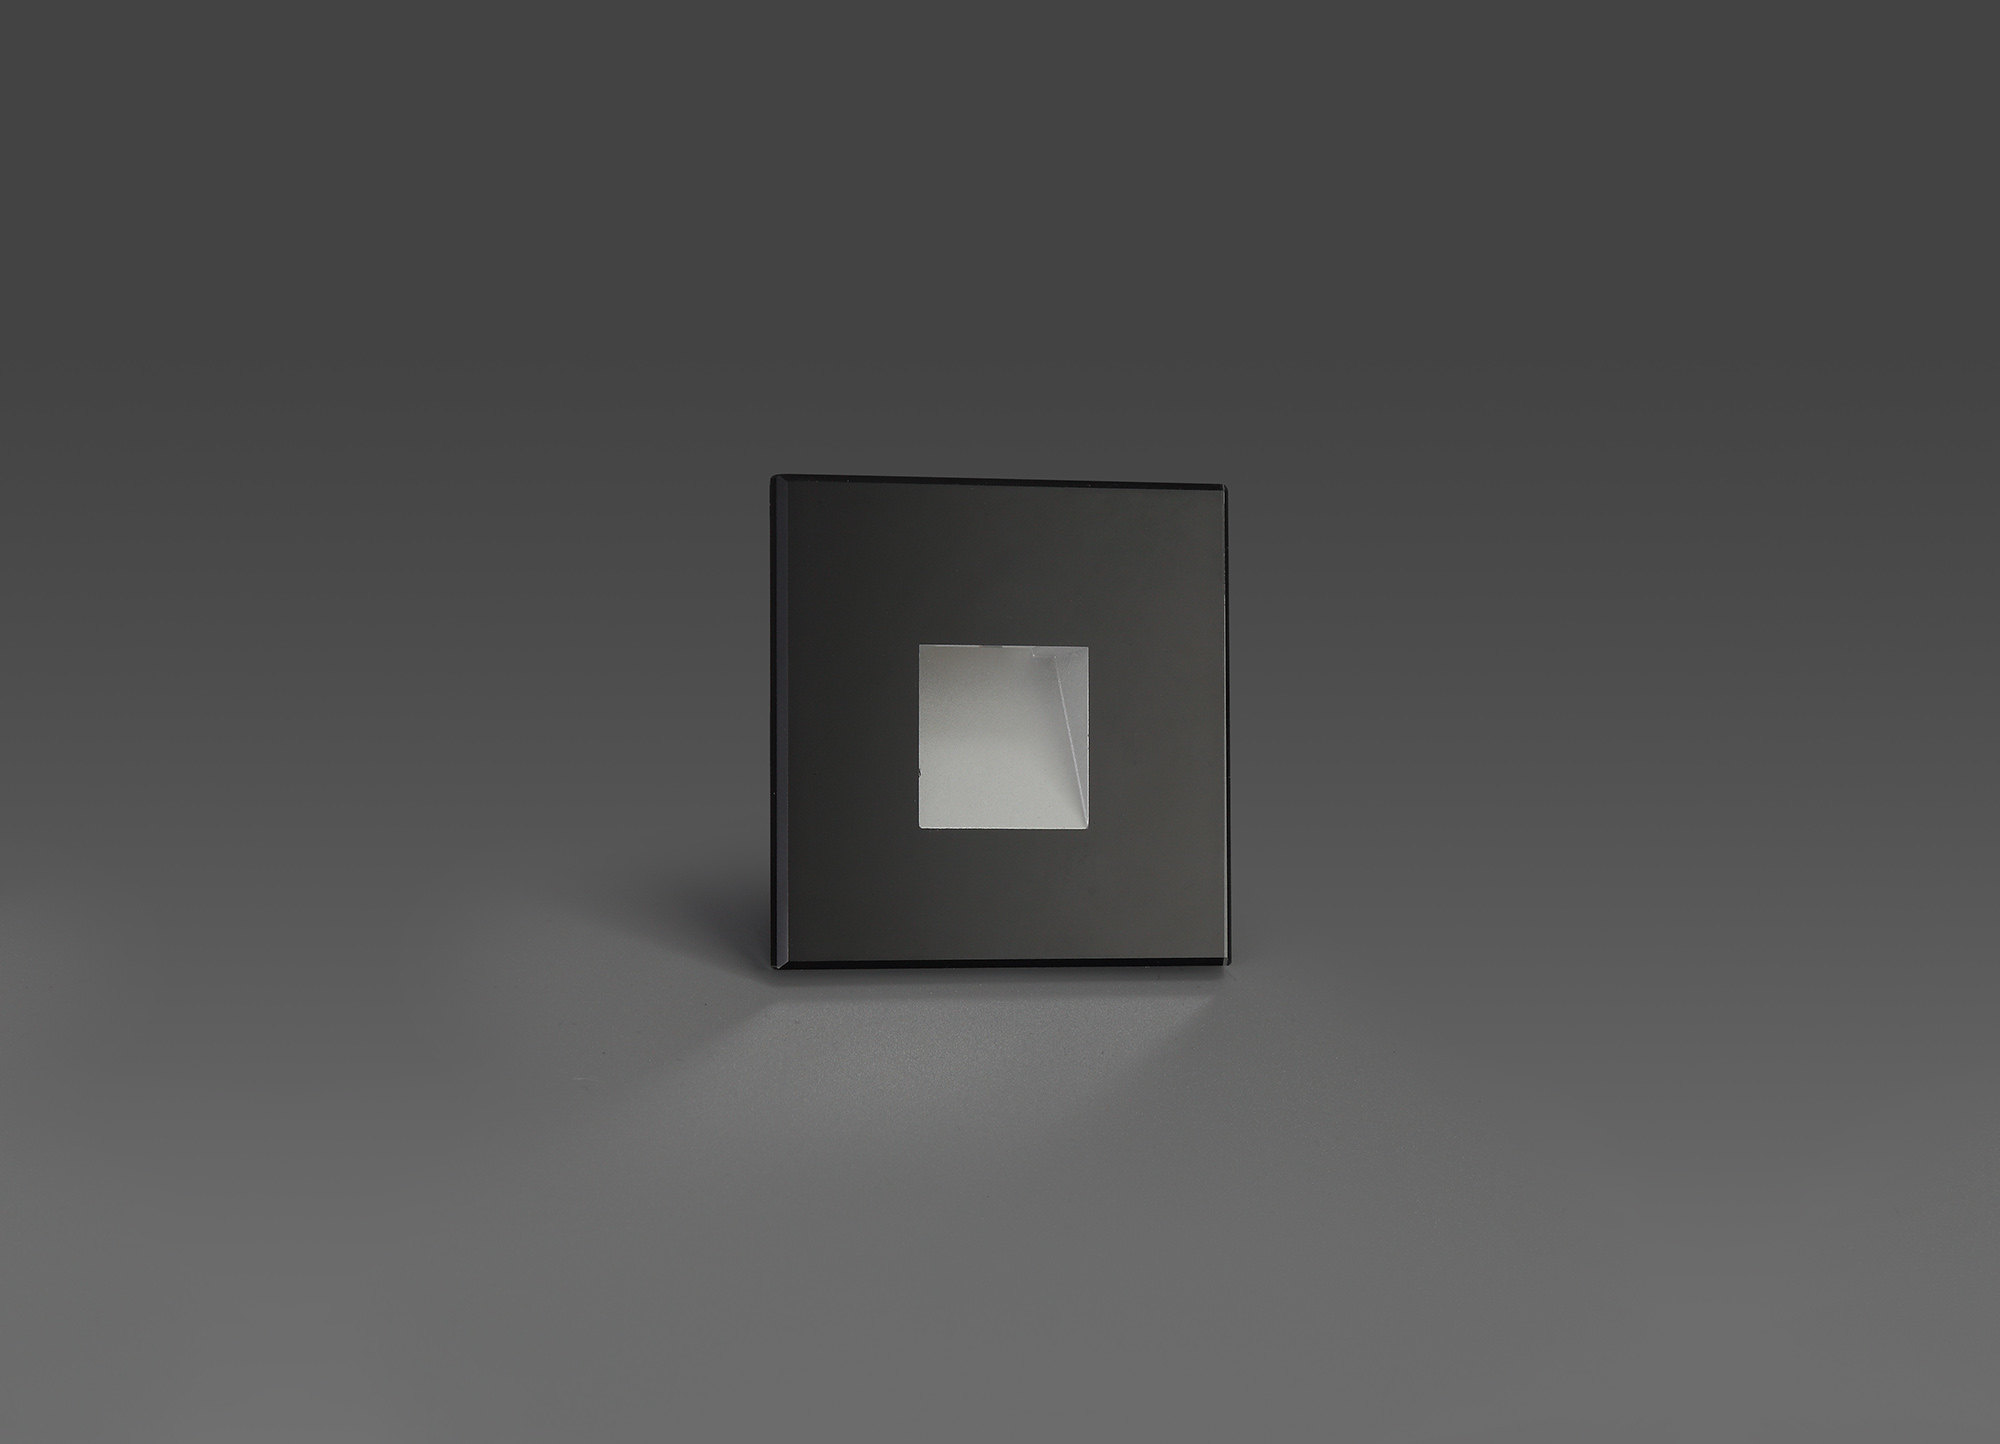 Recessed Square Glass Fronted Wall Lamp, 1 x 1.8W LED, 3000K, 70lm, IP65, 3yrs Warranty